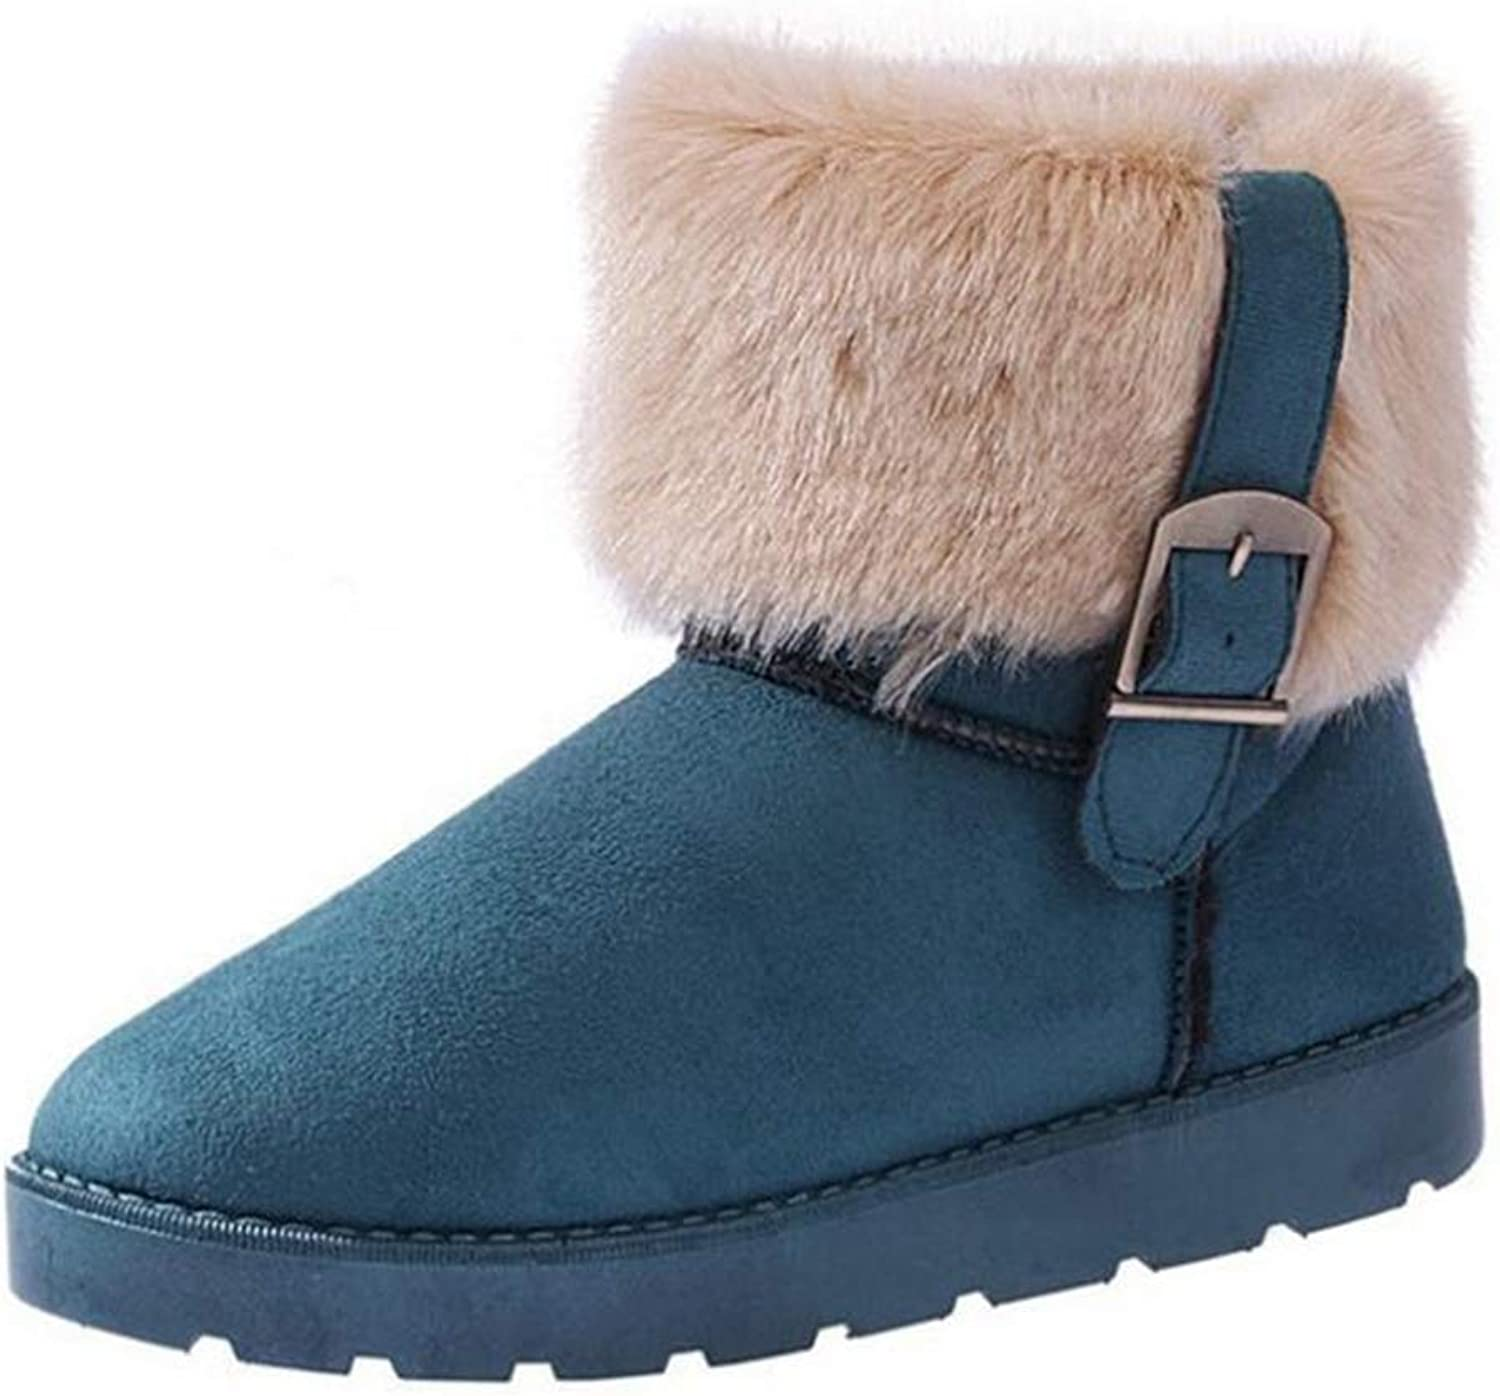 T-JULY Platform Winter Snow Boots for Women Buckle Sweet Furry Warm Ankle Boots Slip On Flat Cotton shoes